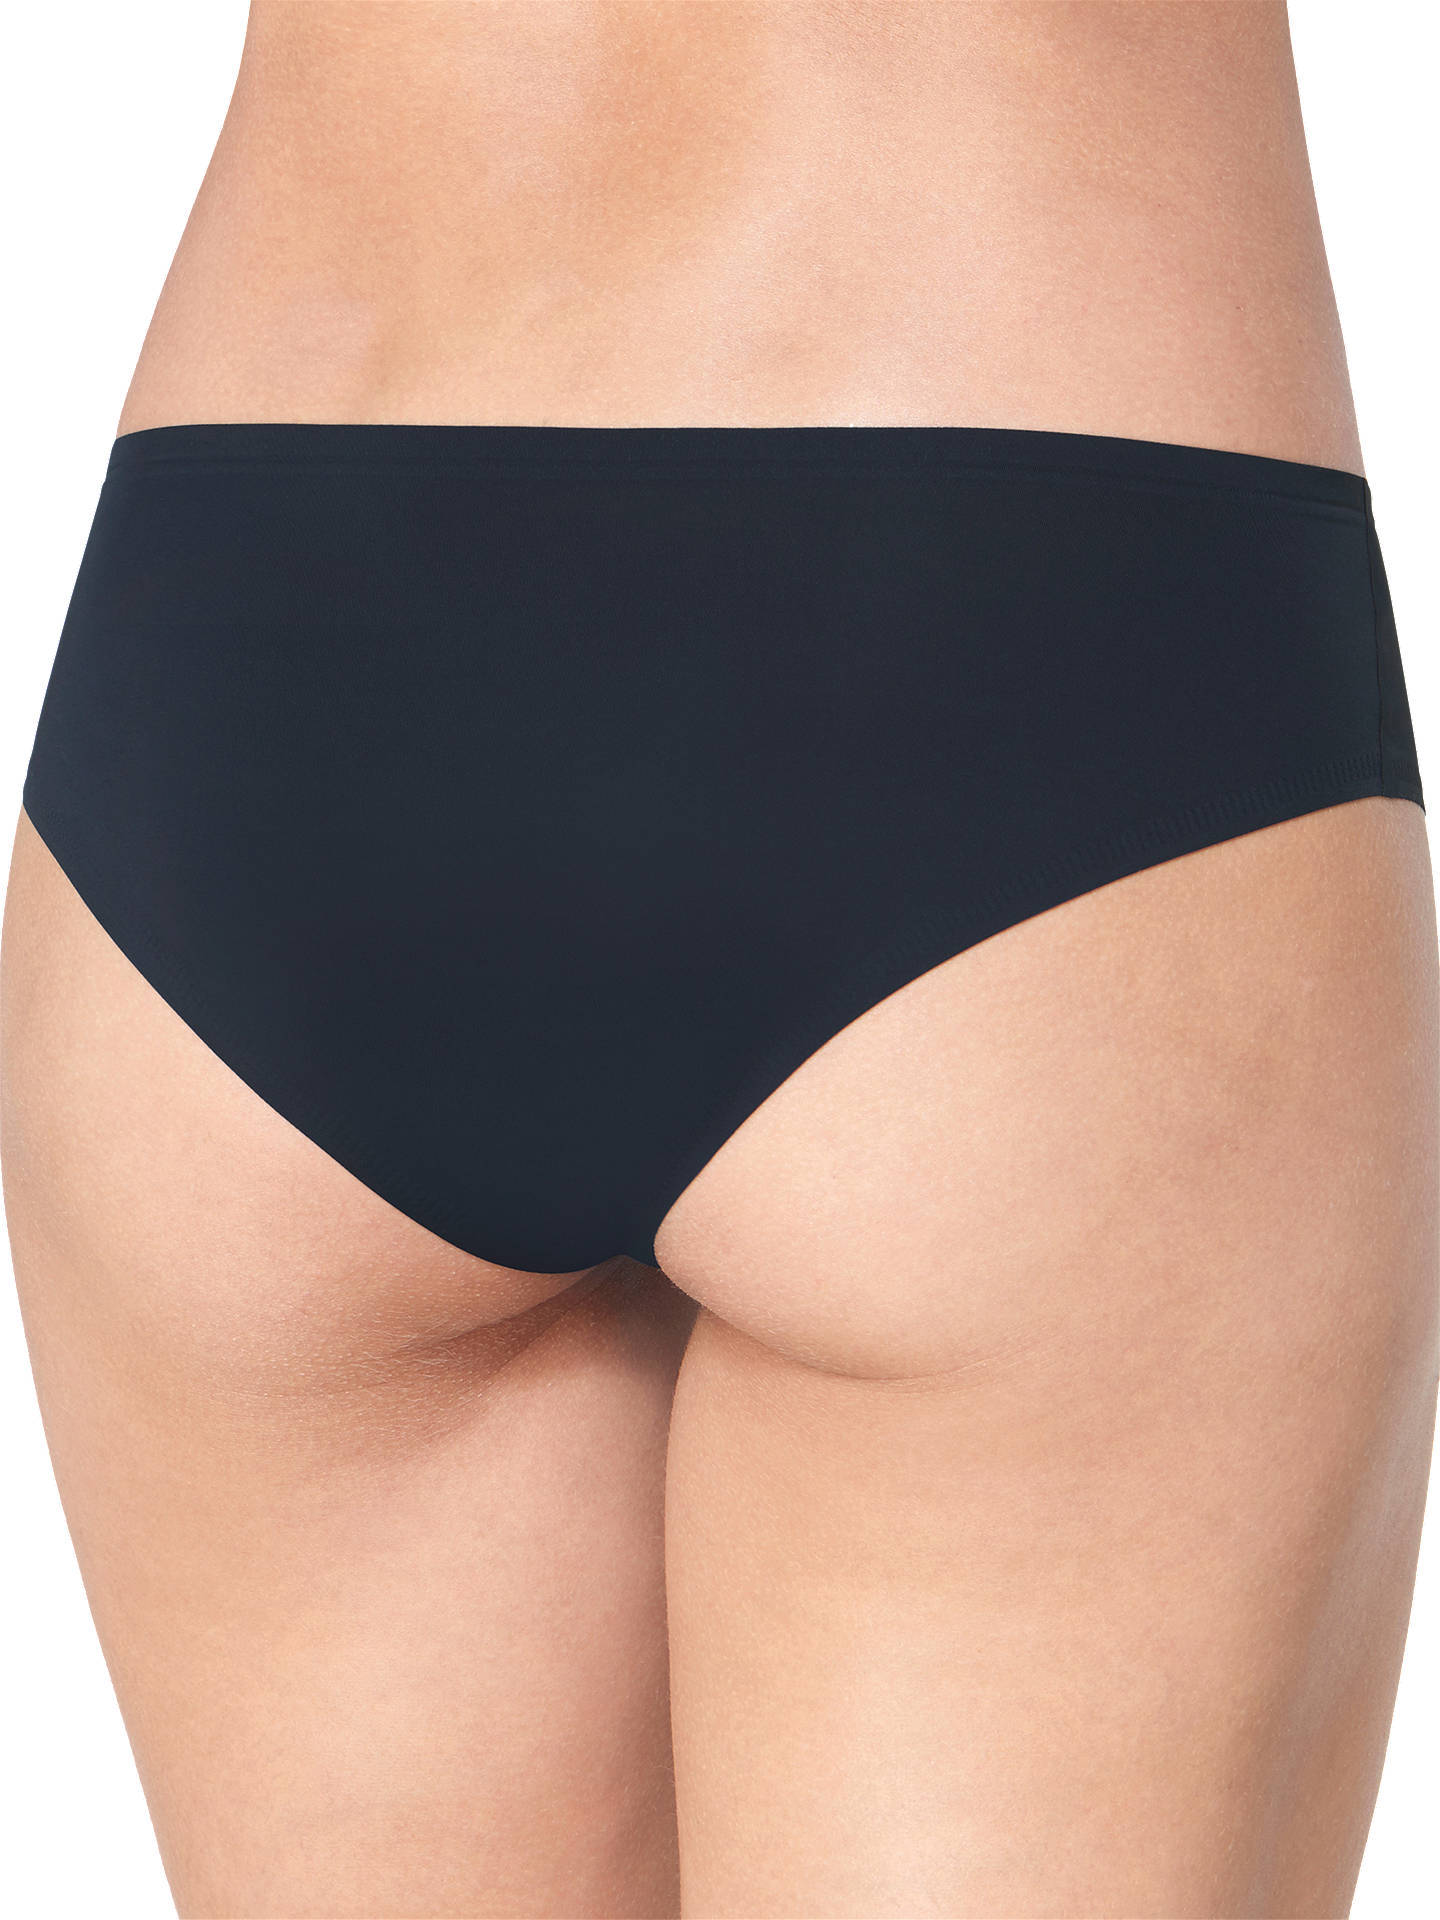 Buysloggi Zero One Hipster Briefs, Black, XS Online at johnlewis.com